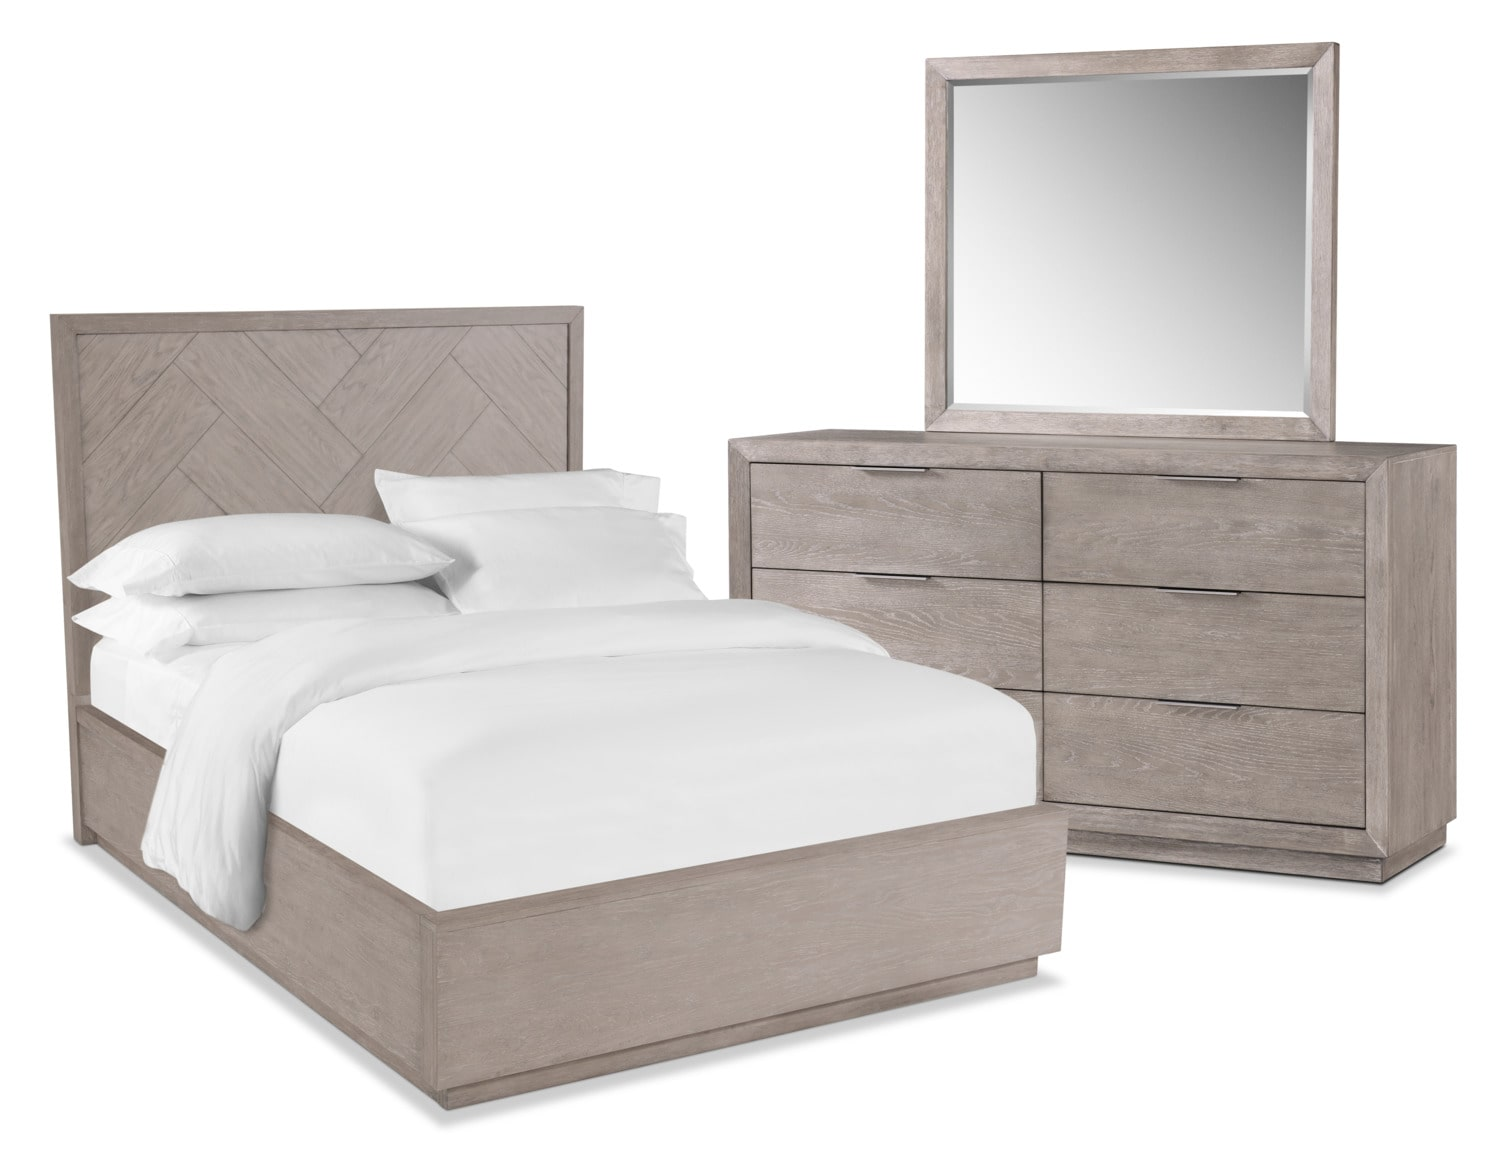 Zen 5-Piece Bedroom Set with Dresser and Mirror